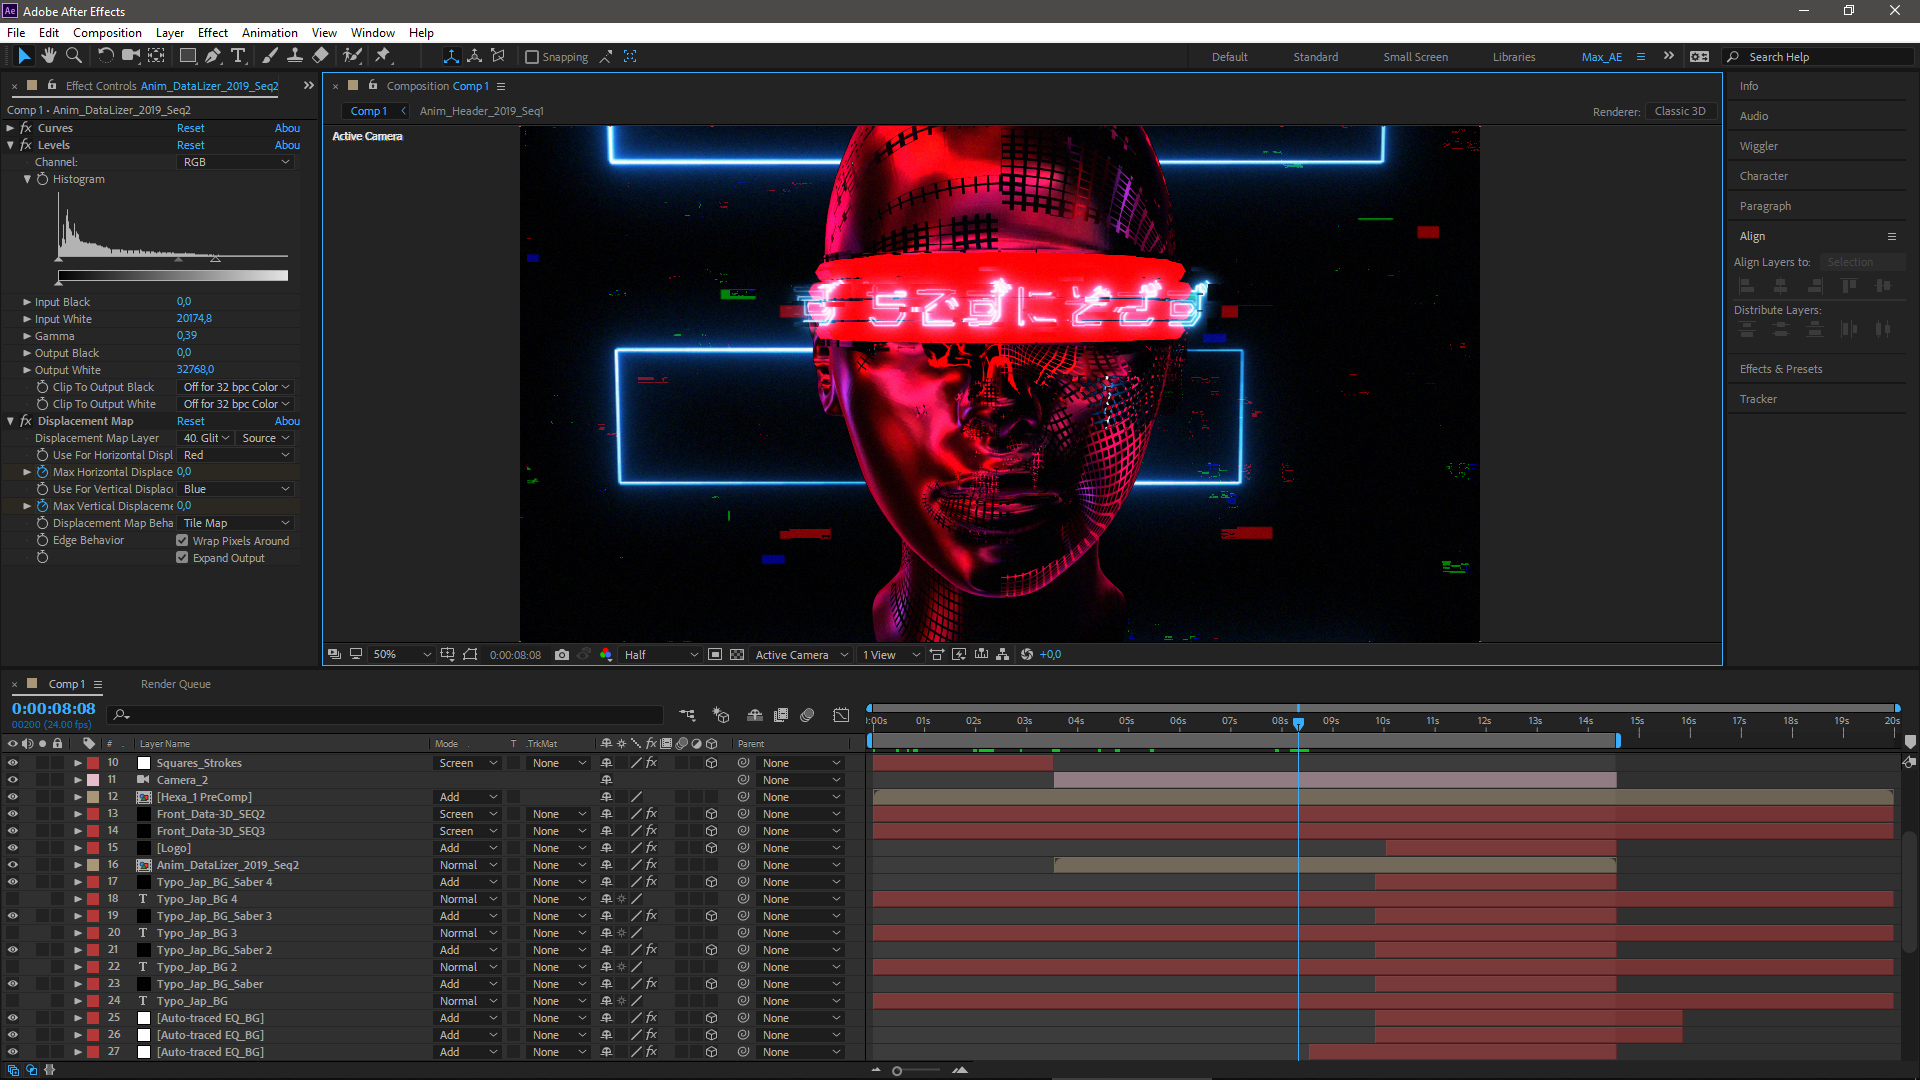 DataLizer motion design After Effects tools and timeline